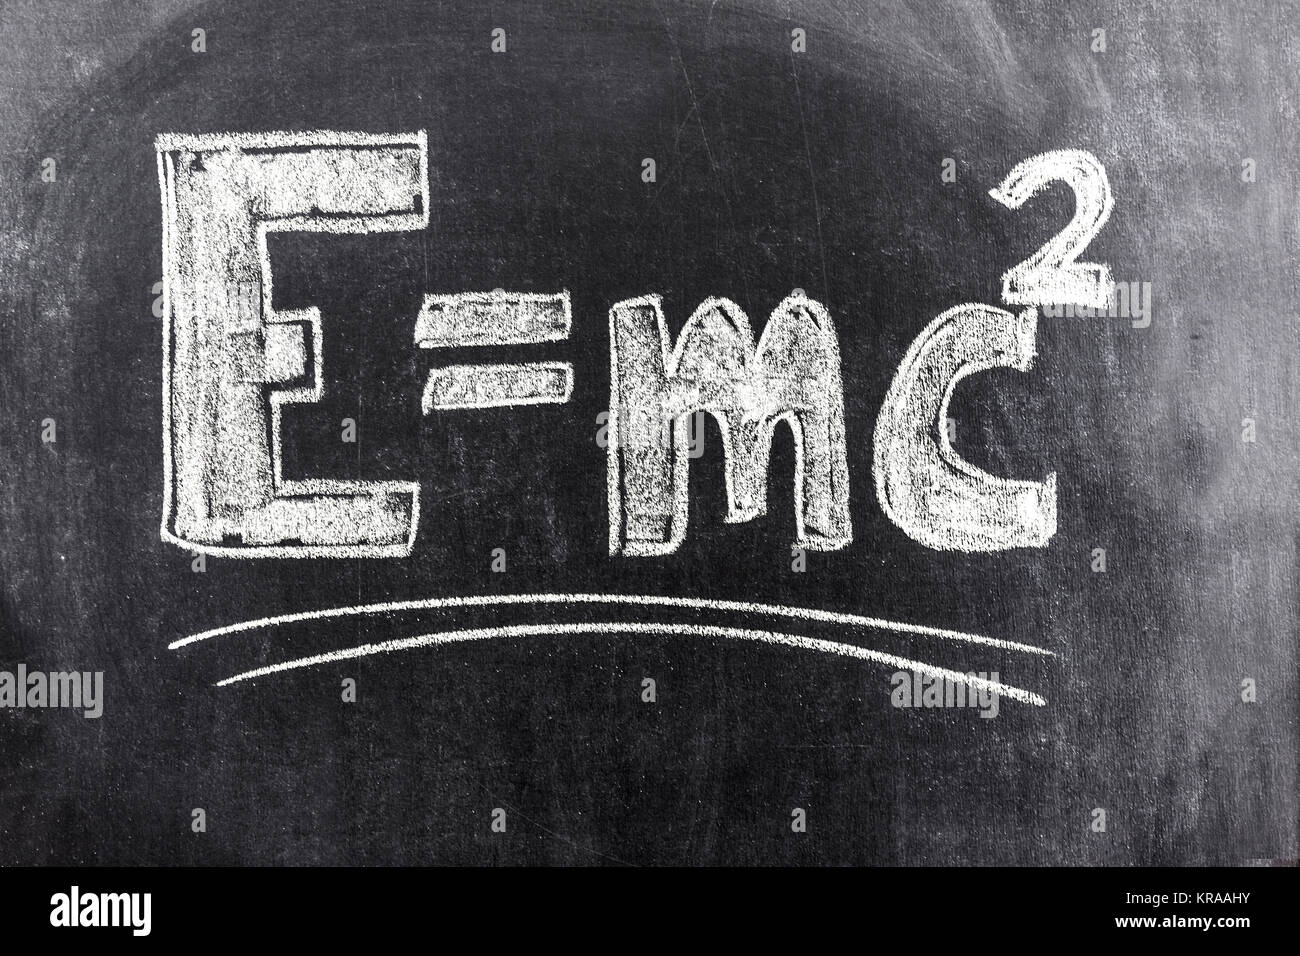 Einstein's formula of relativity theory - Stock Image